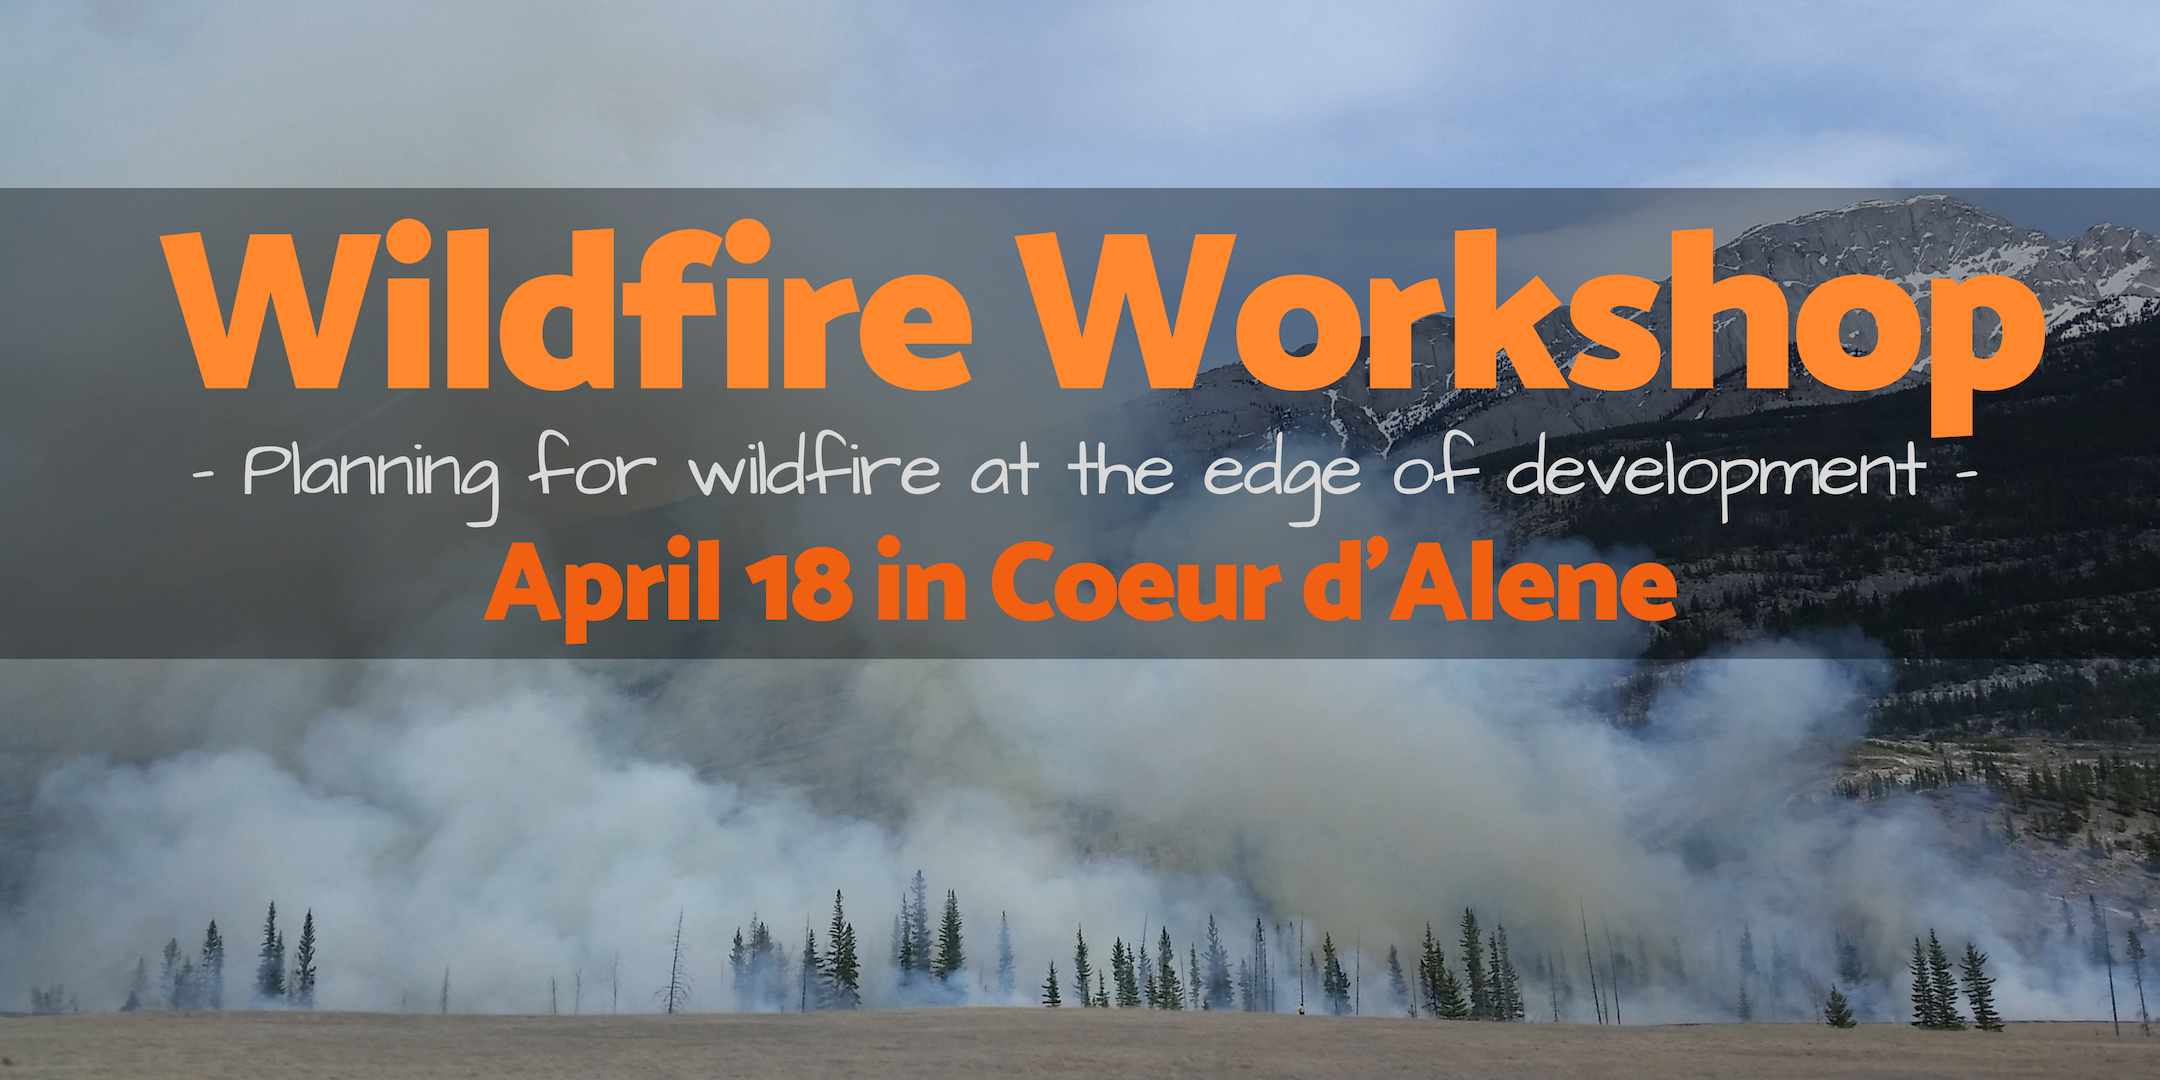 Wildfire Workshop- April 18